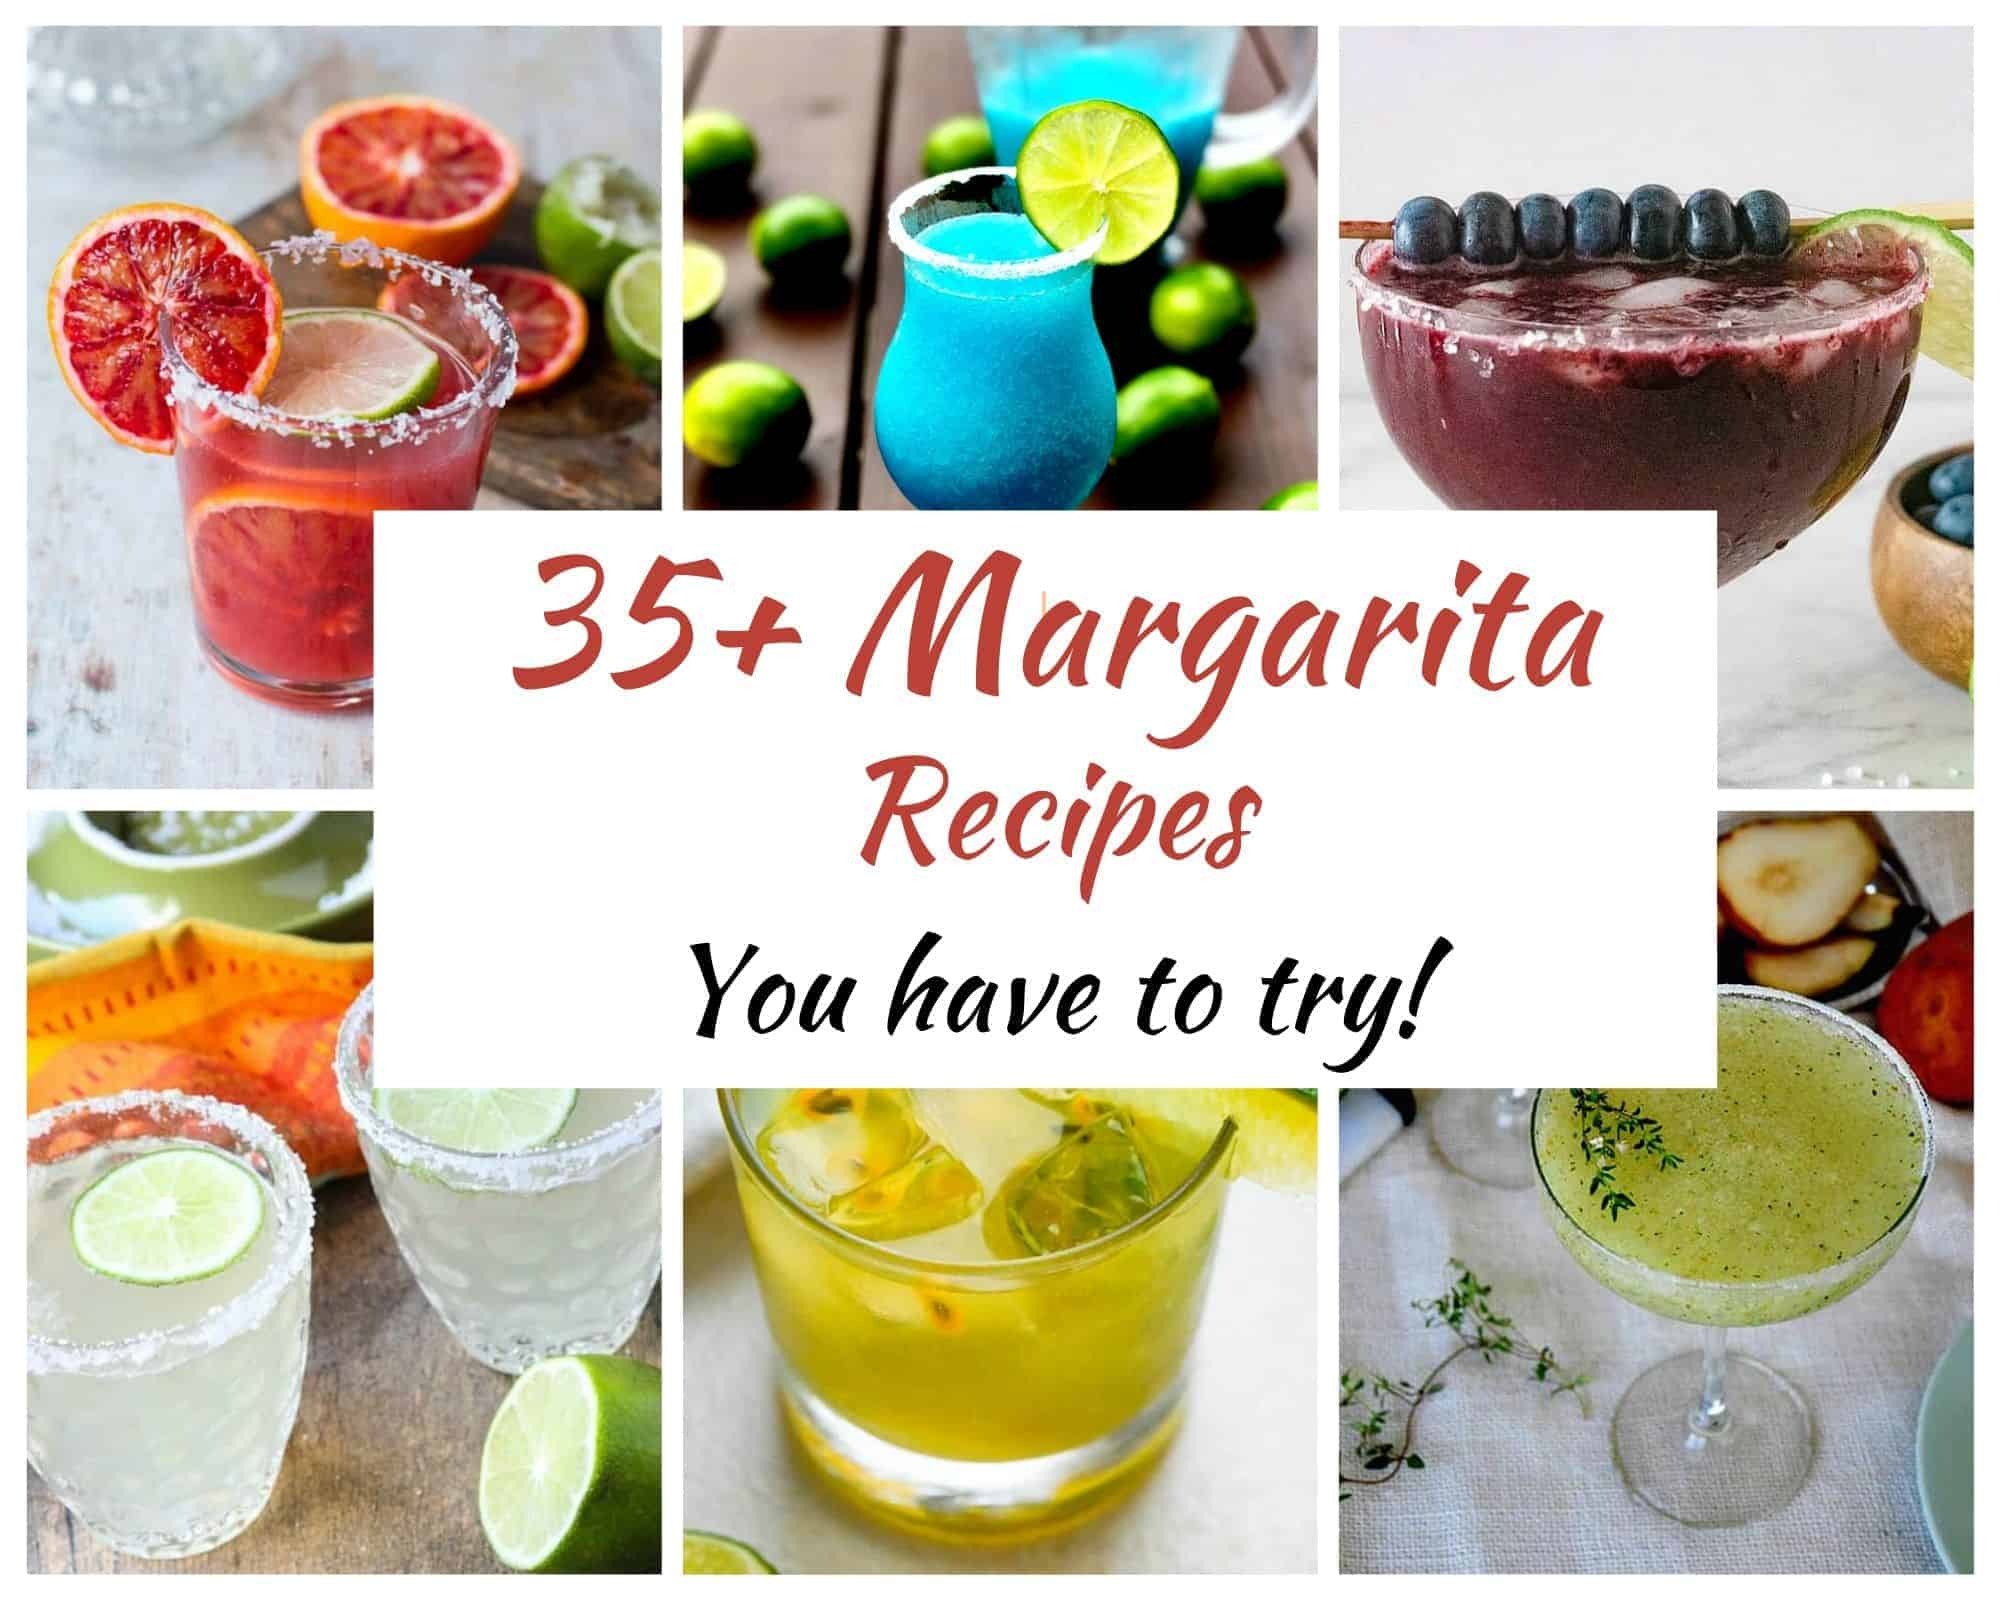 Margarita Recips